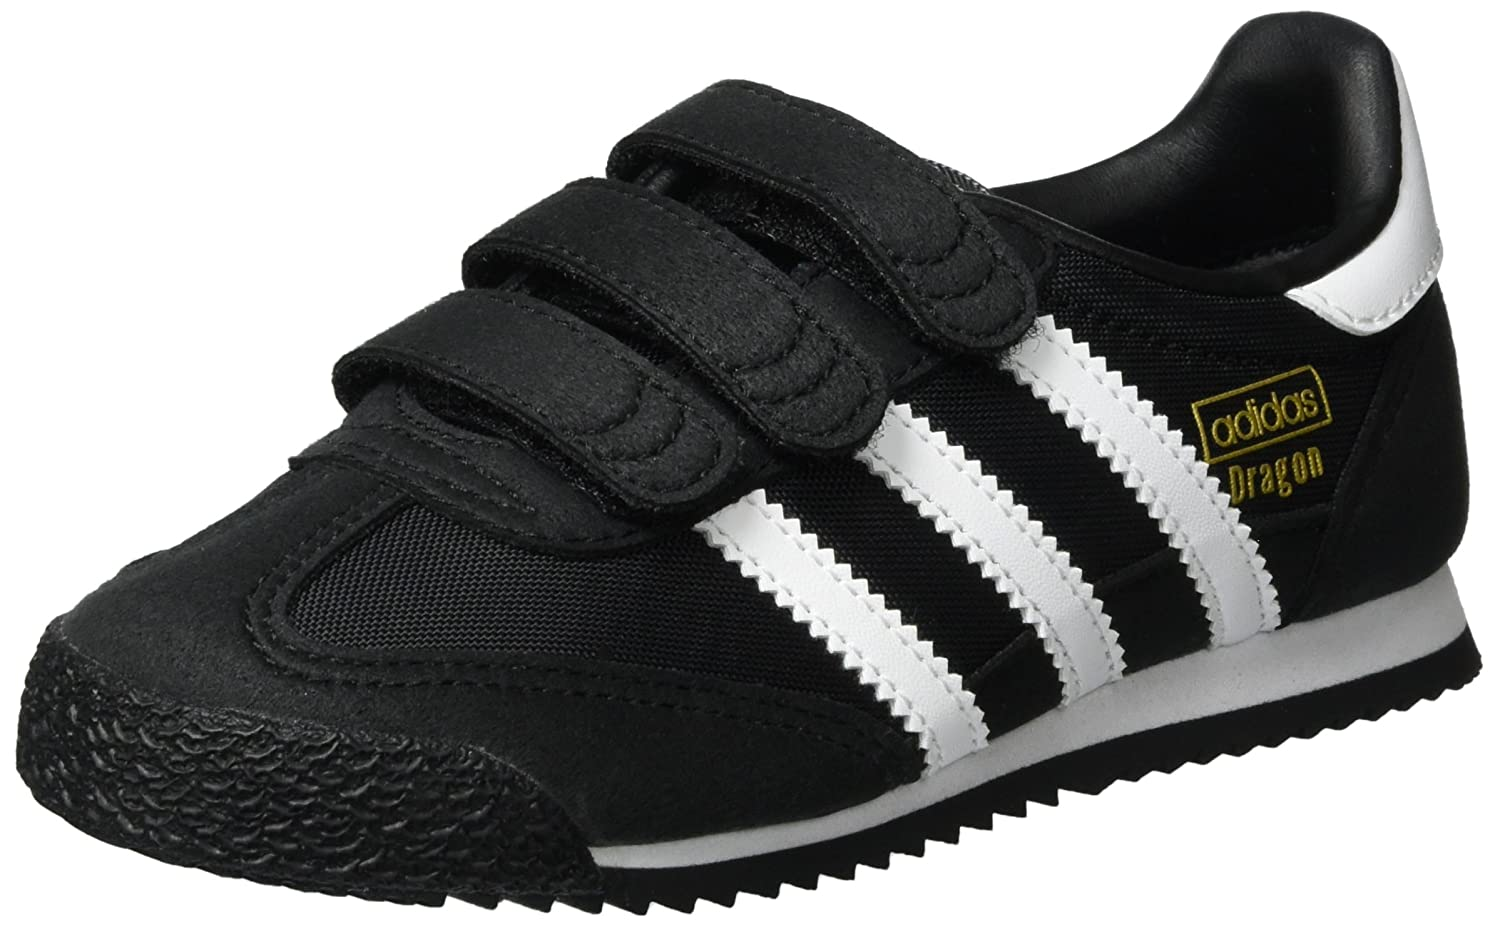 separation shoes e0c82 6ea7e adidas Originals Boys Dragon Og Cf C Cblack And Ftwwht Sneakers - 13 kids  UKIndia (31.50 EU) Buy Online at Low Prices in India - Amazon.in